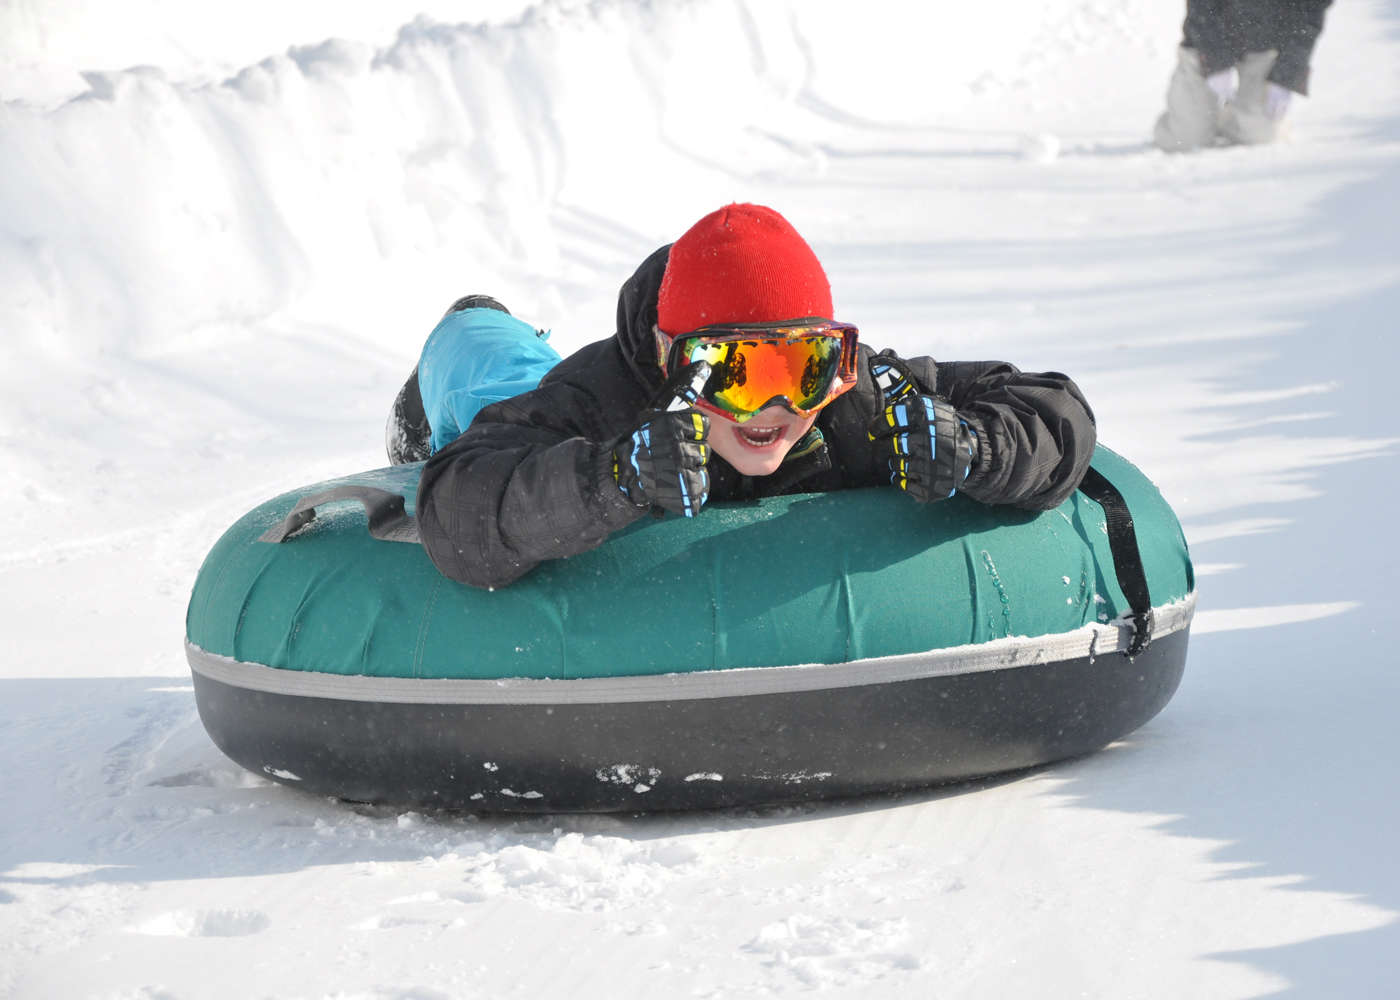 Skiers, riders and tubers can look forward to enhancements both on and off the slopes.